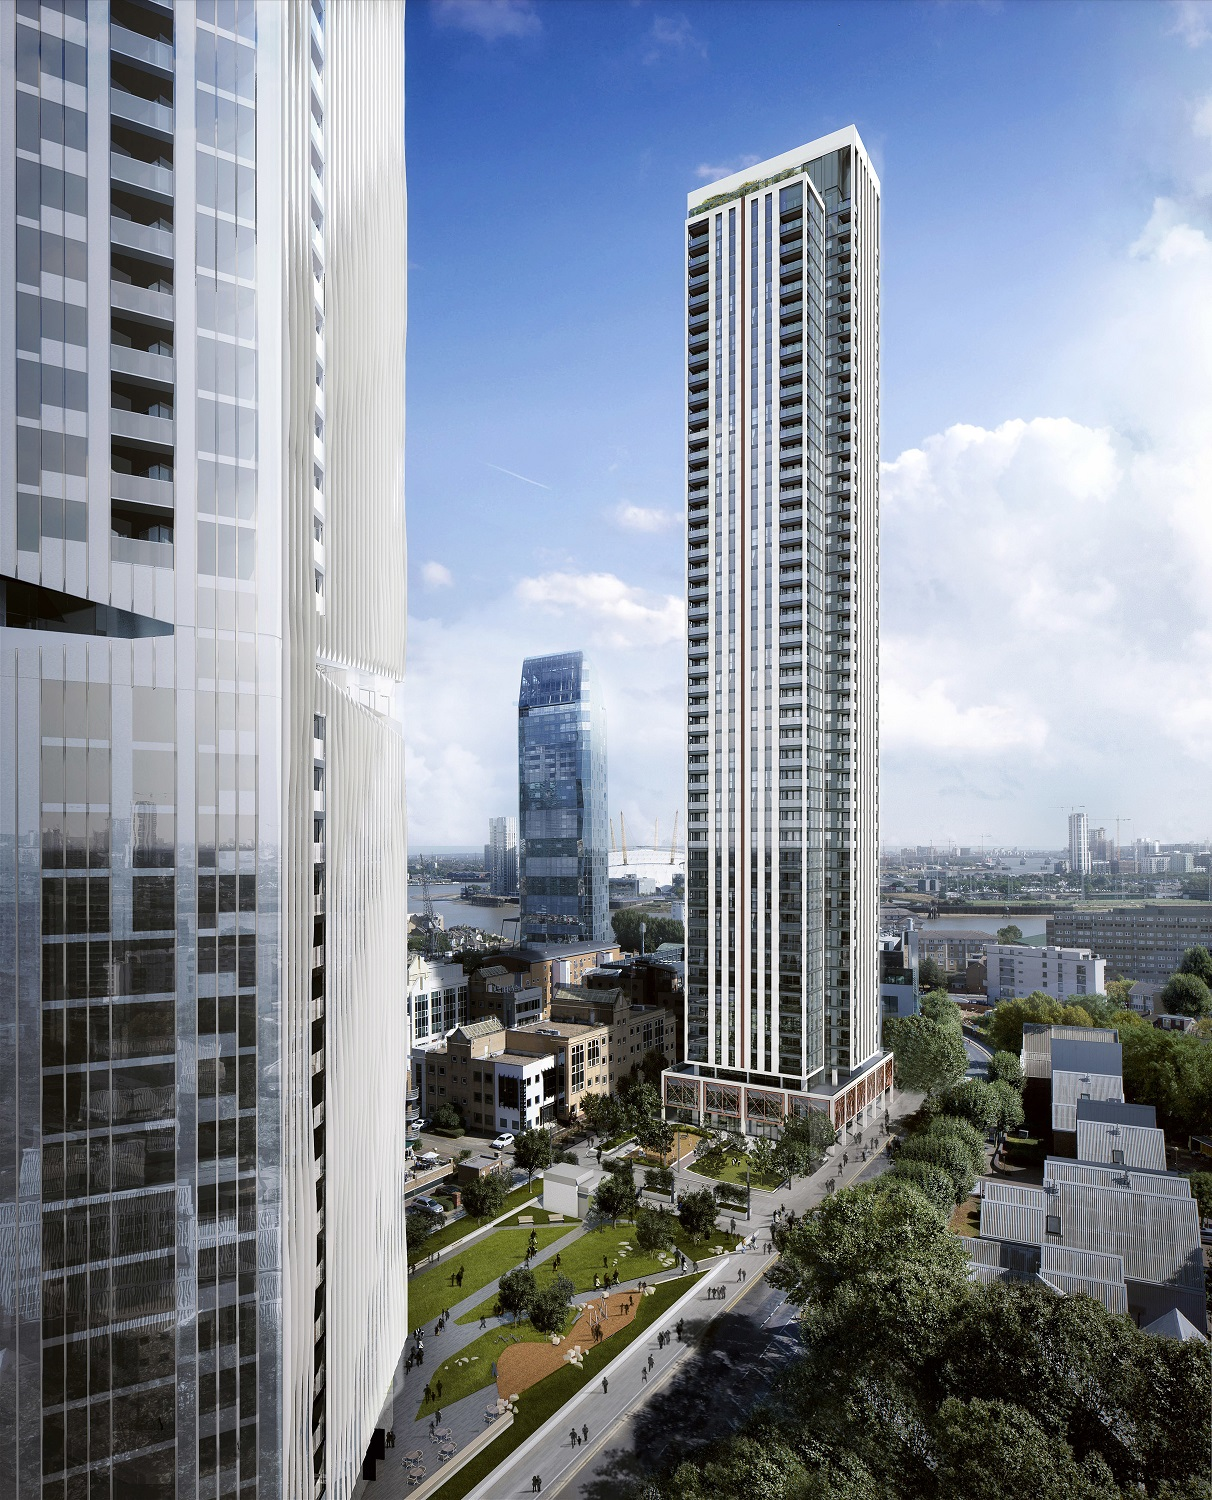 LBS Properties wins appeal for new 48-storey residential tower in South Quay